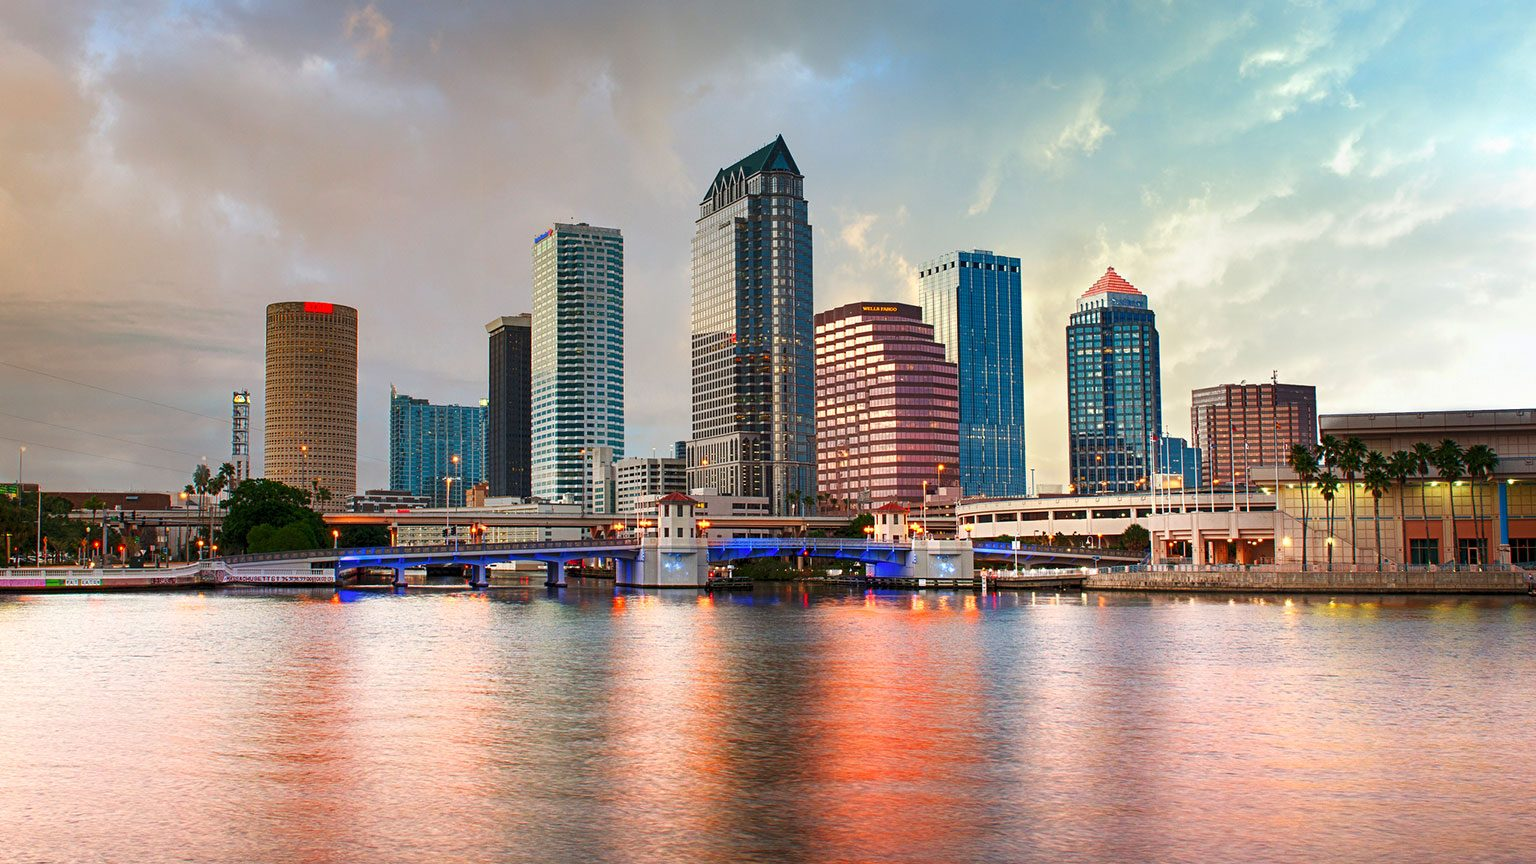 Downtown Tampa skyline view from the harbor at dusk